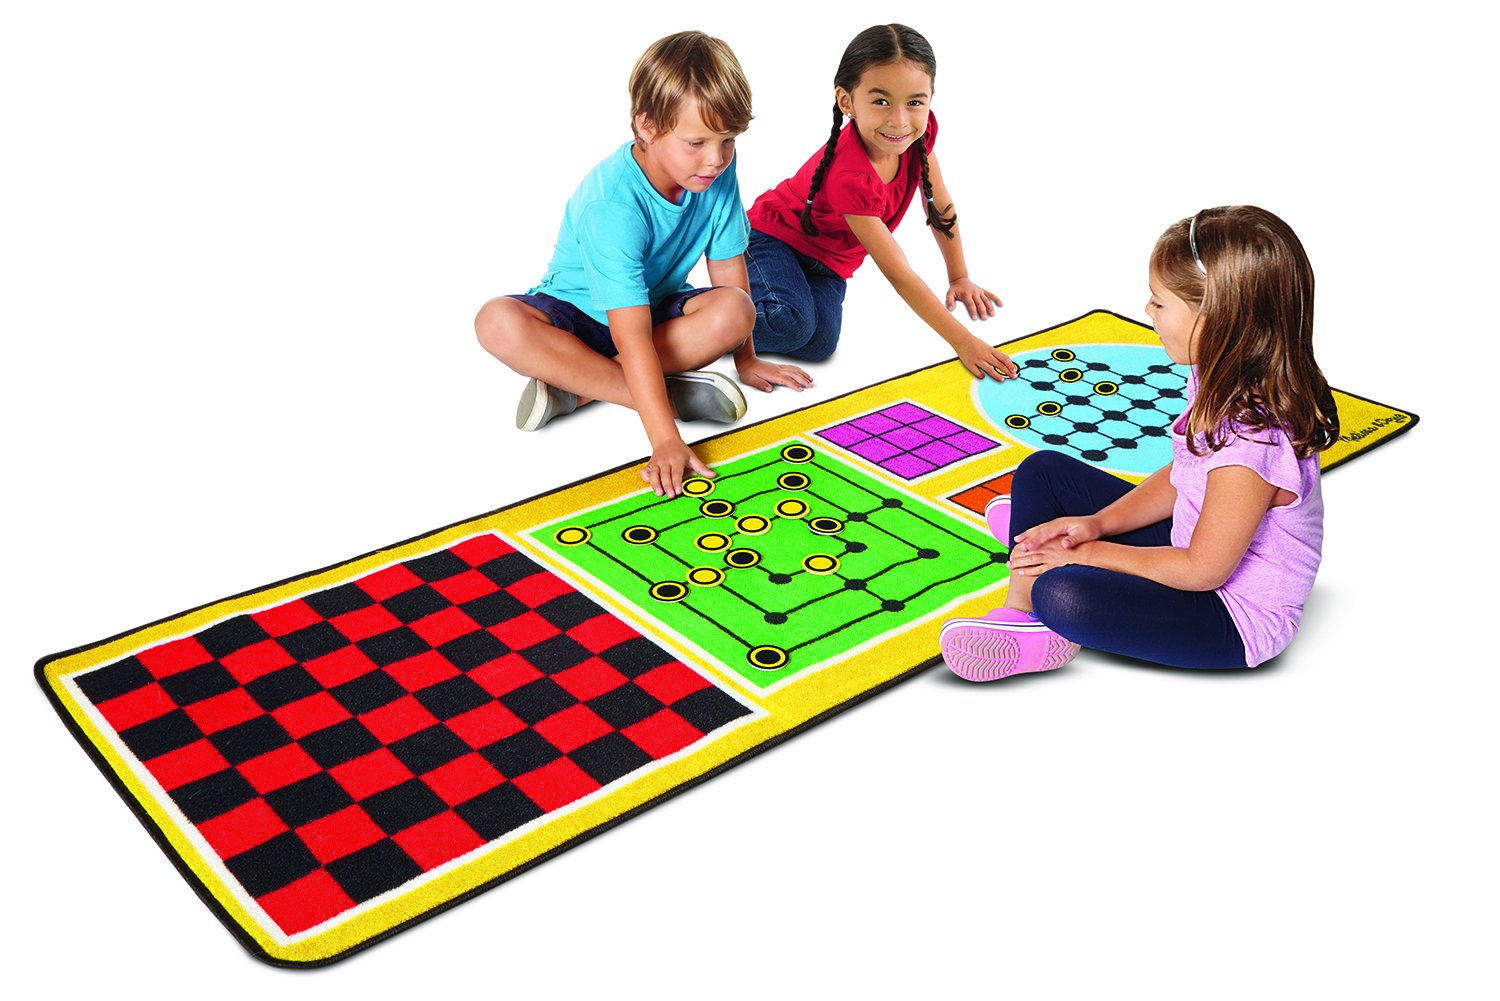 Melissa & Doug 4-in-1 Game Rug (78.5 x 26.5 inches) - 4 Board Games, 36 Game Pieces by Melissa & Doug (Image #1)